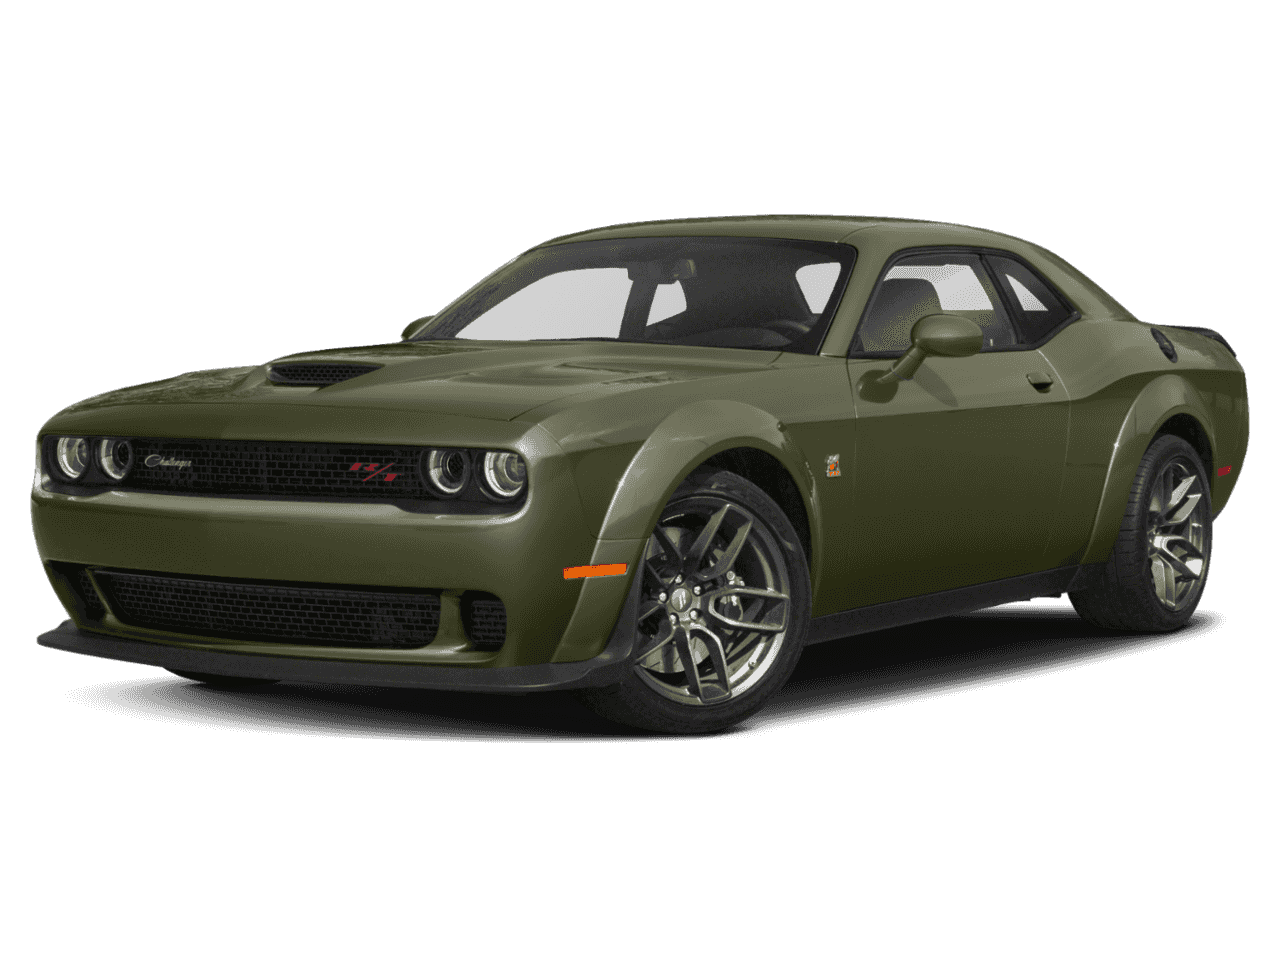 New 2020 DODGE Challenger R/T Scat Pack 50th Ann. Widebody